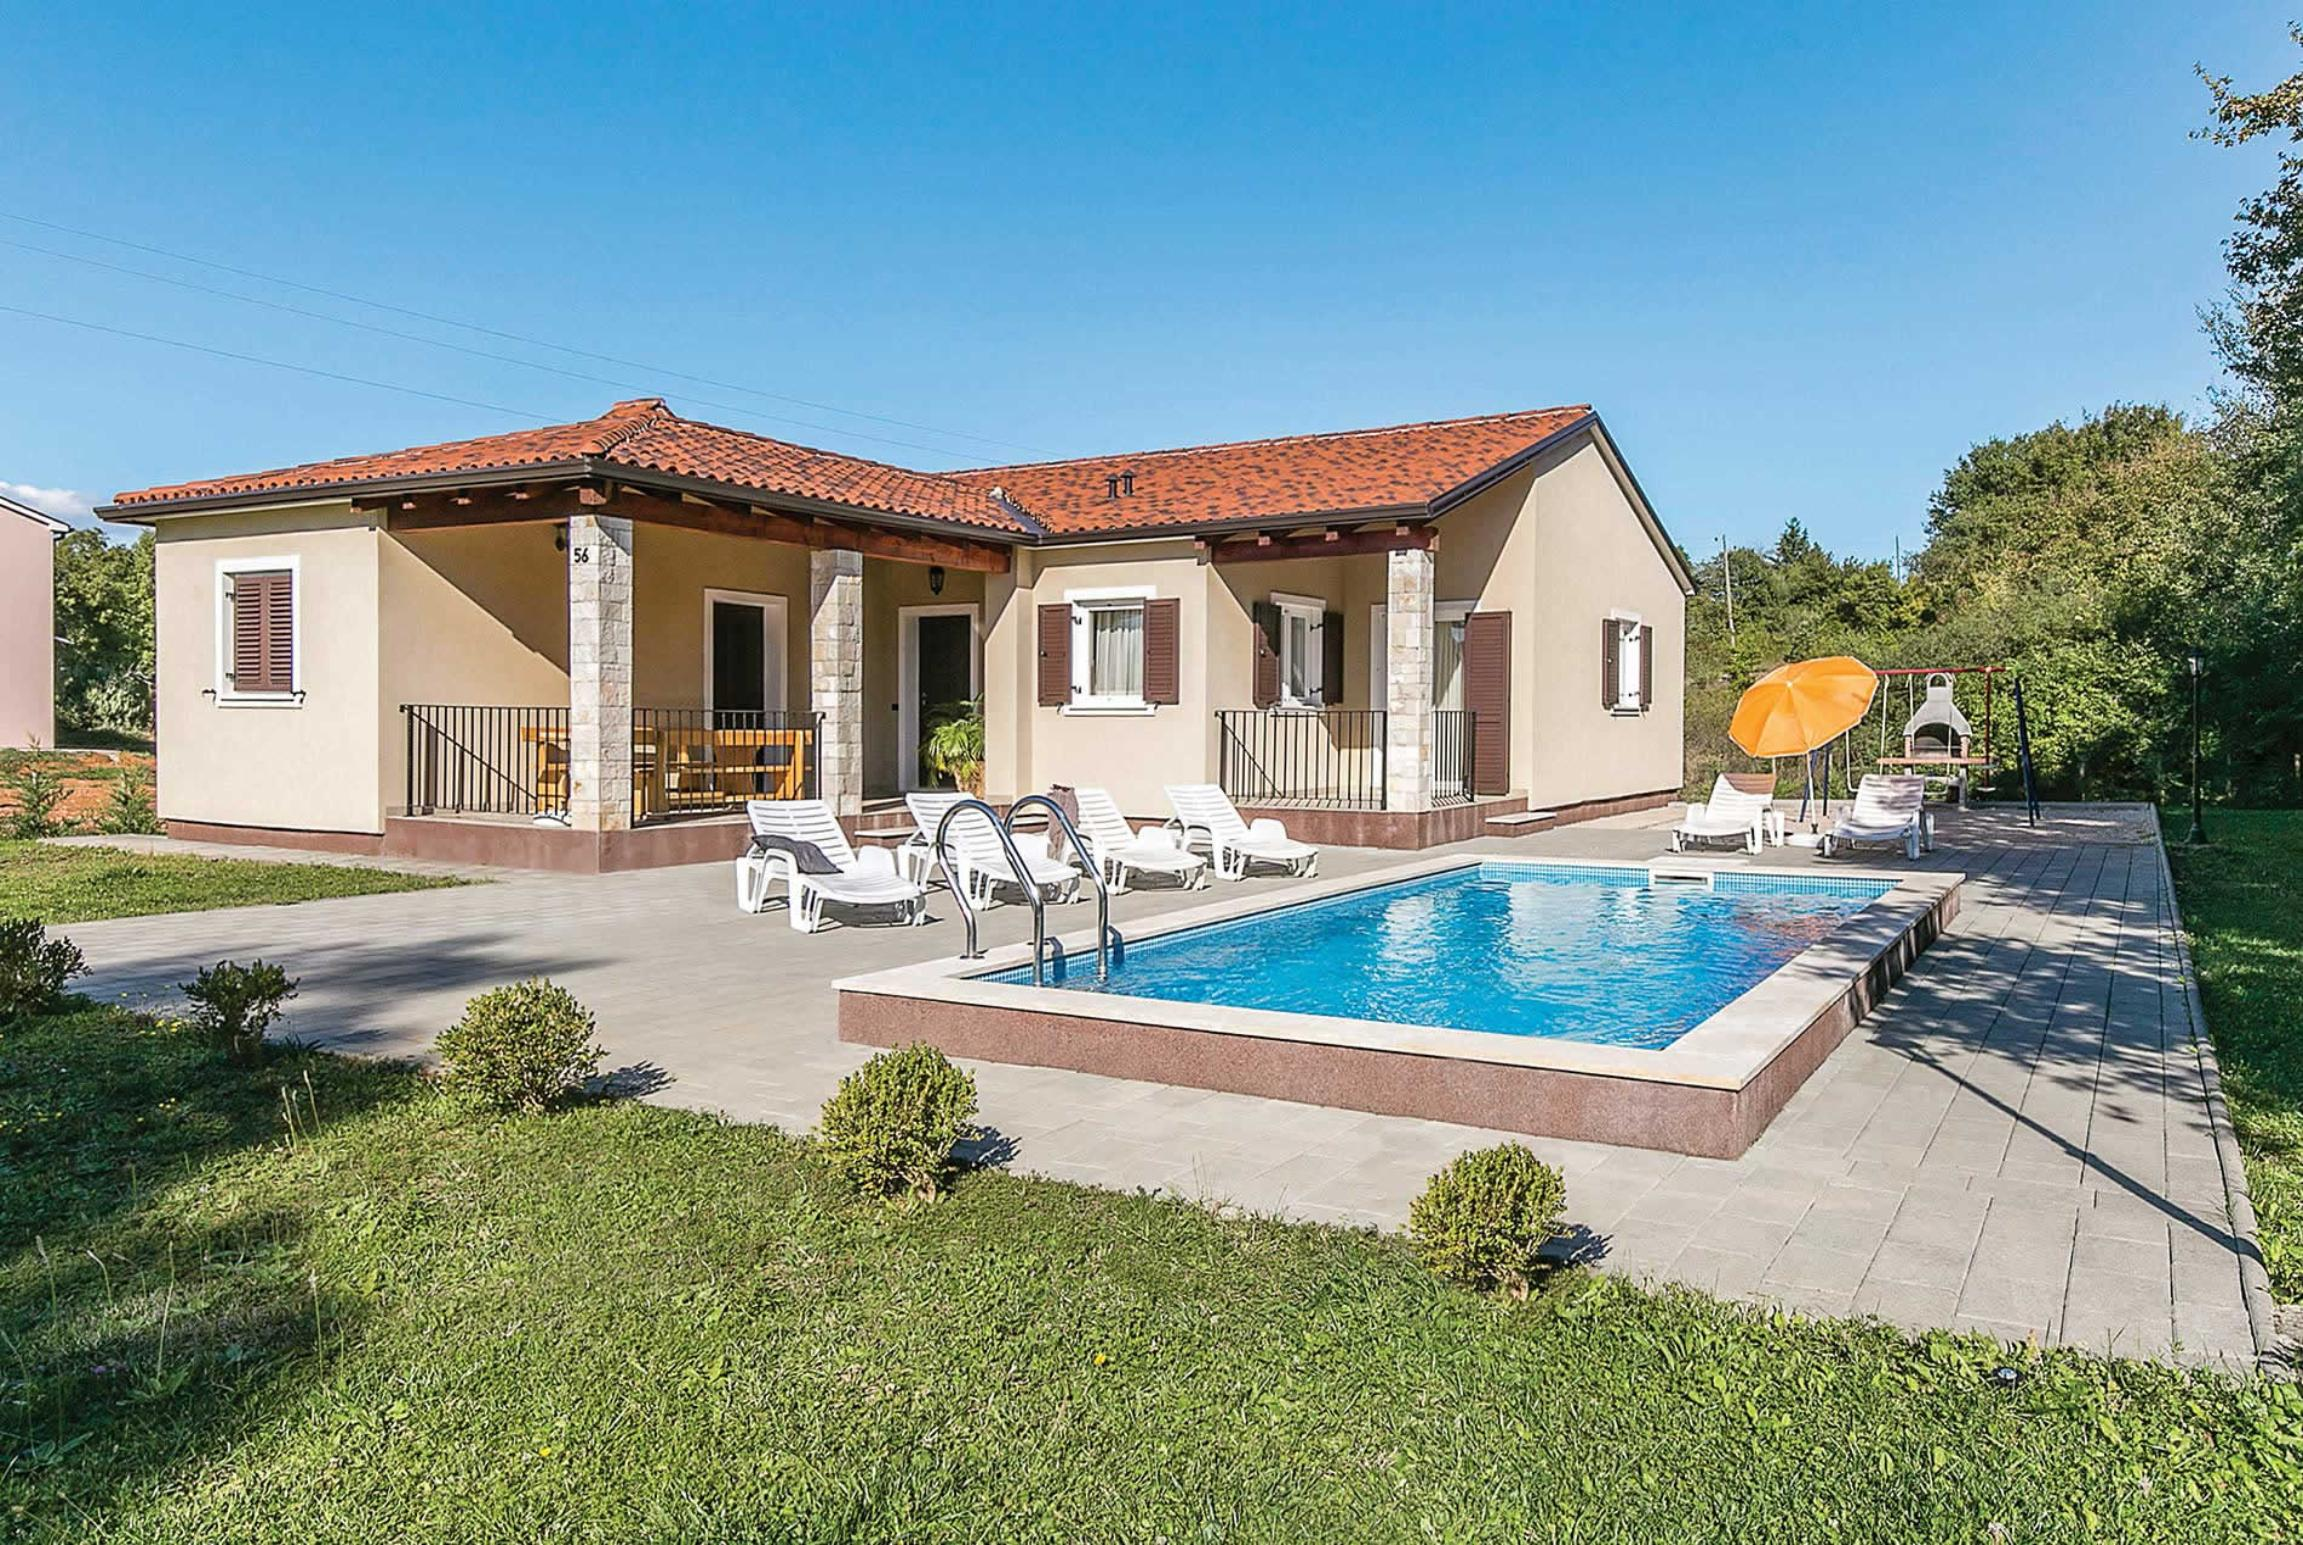 Read more about Slatka villa